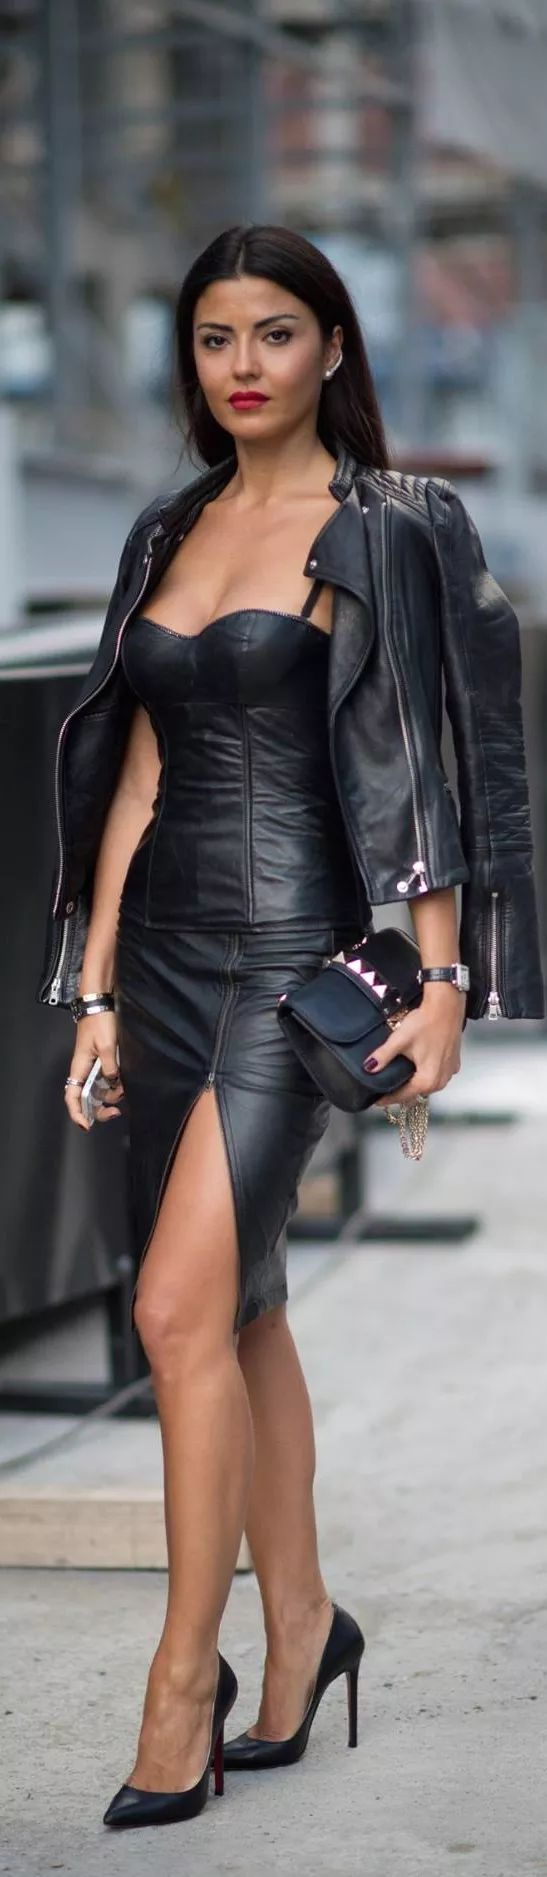 Men love a Woman wearing leather ..... cause it smells like a new truck !!!!